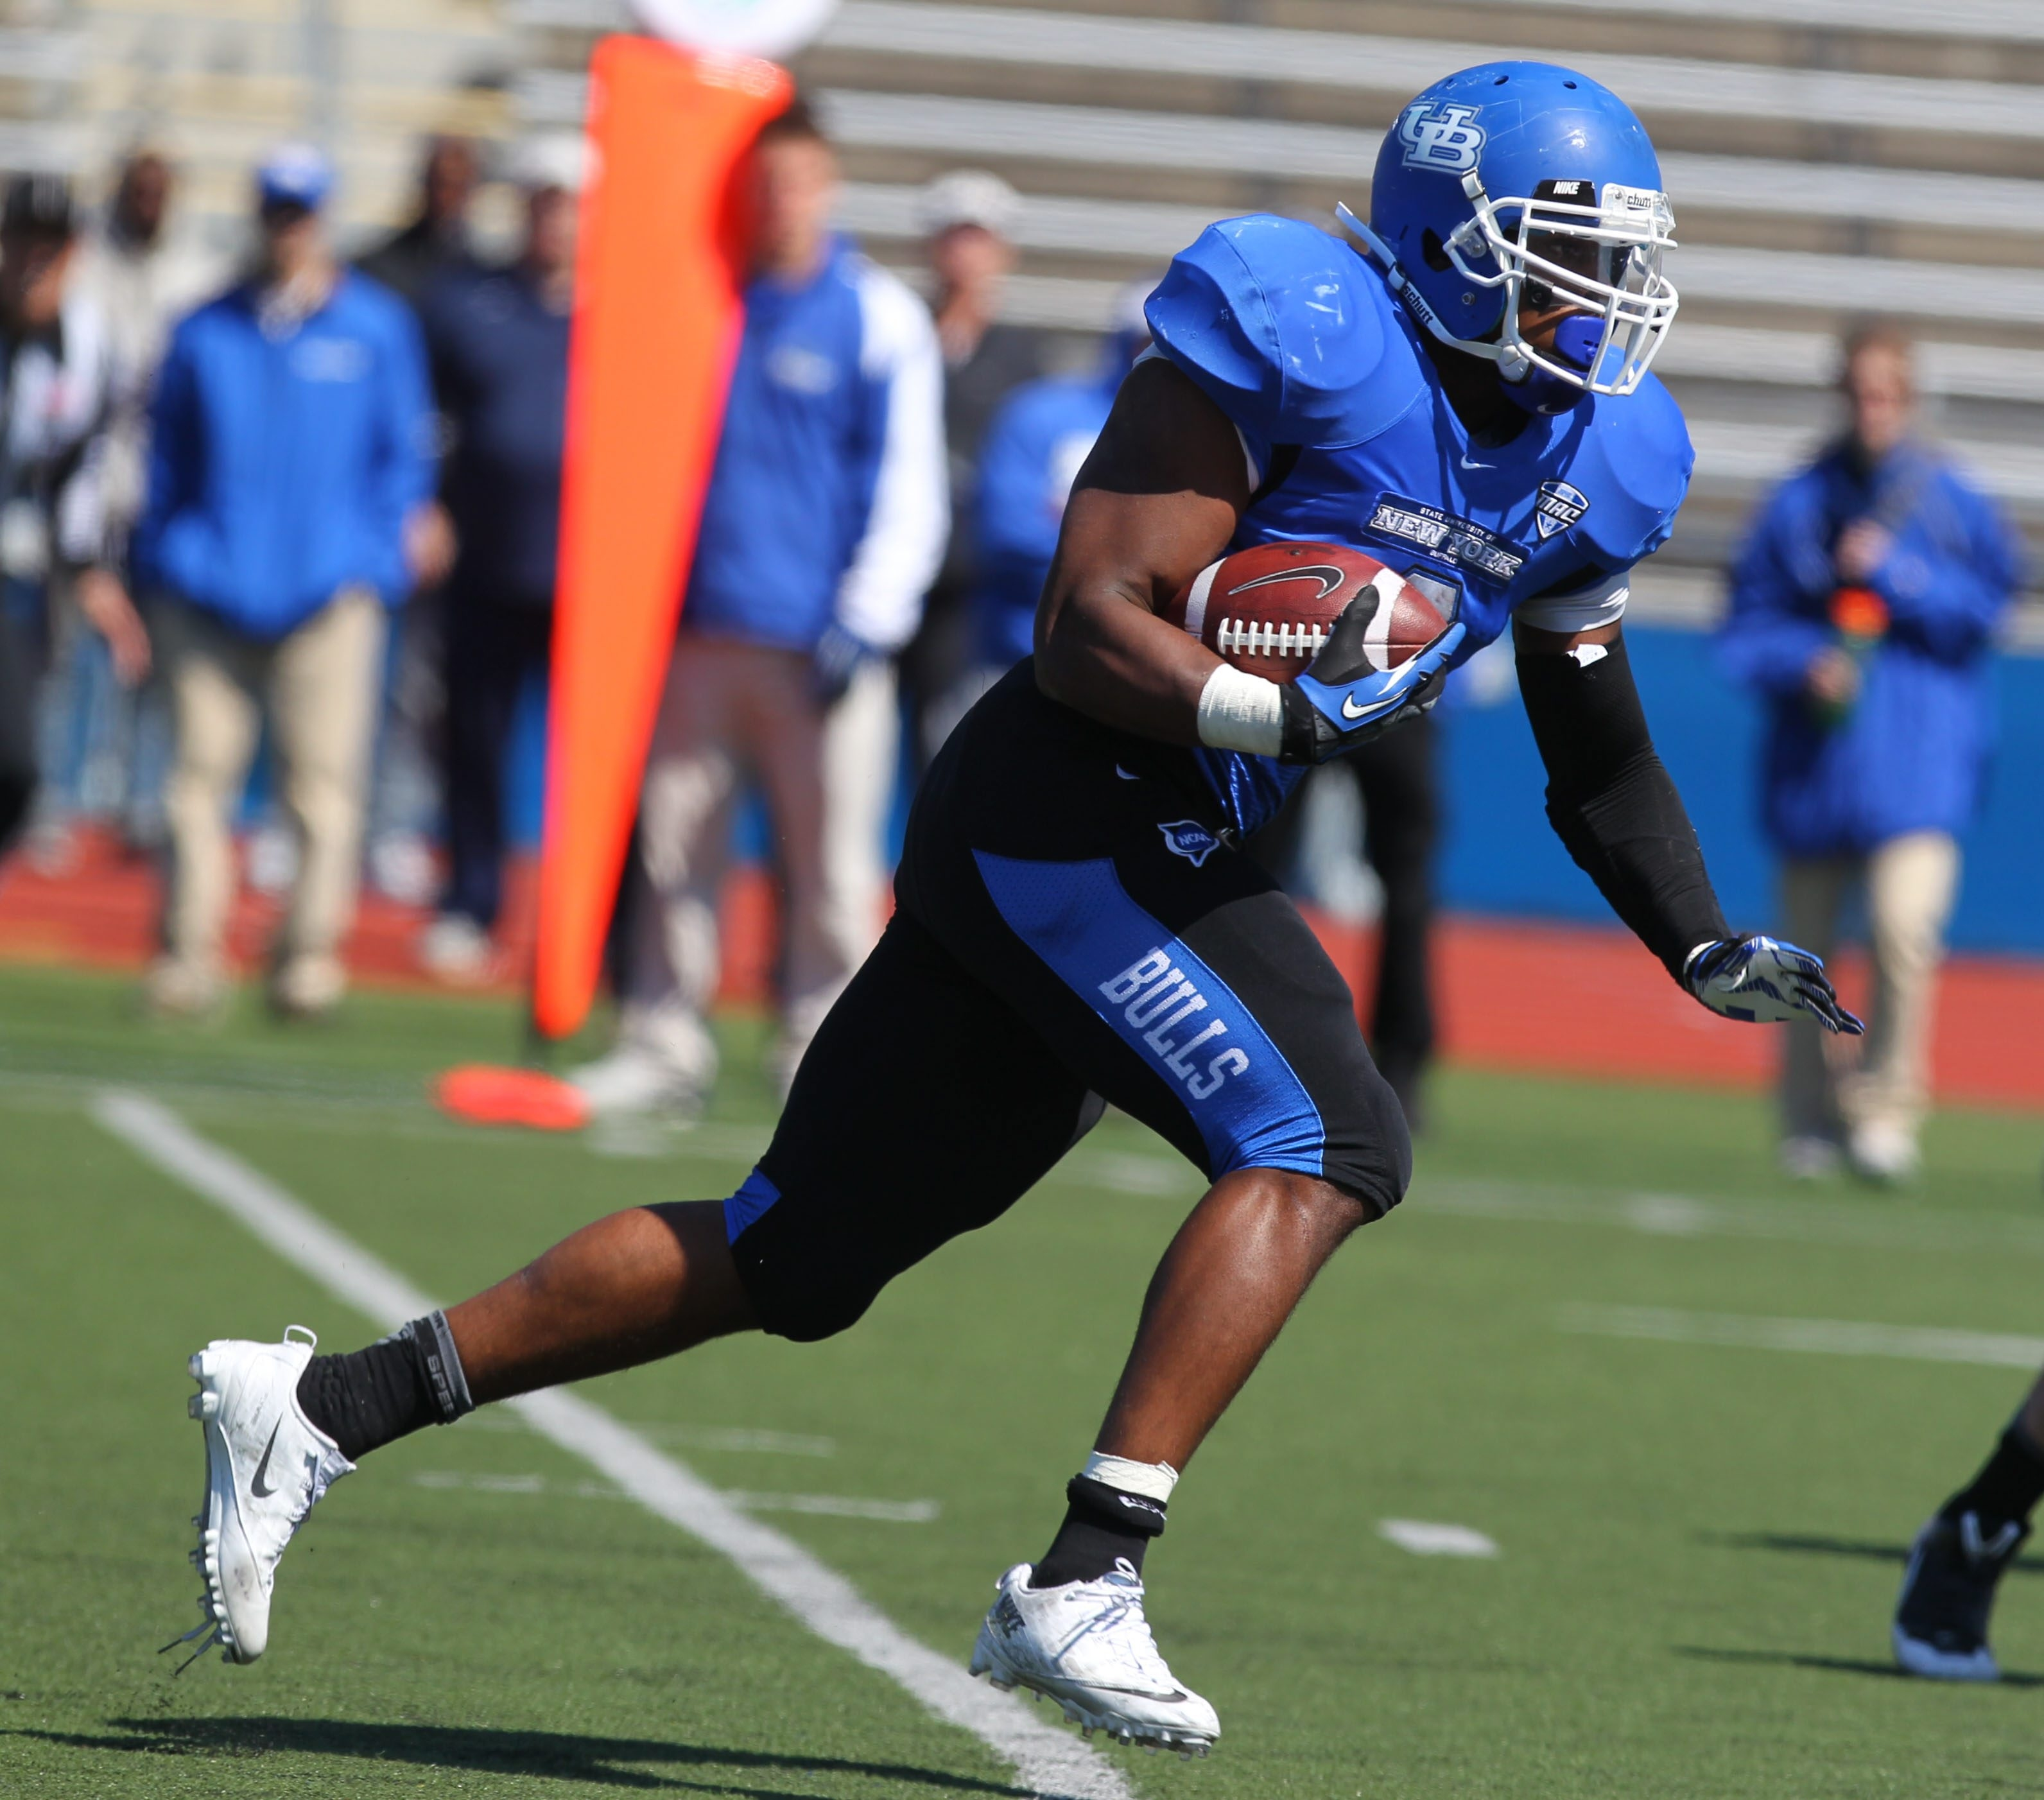 Jordan Johnson of the Blue team showed some speed in scoring two touchdowns in Saturday's Blue & White game.